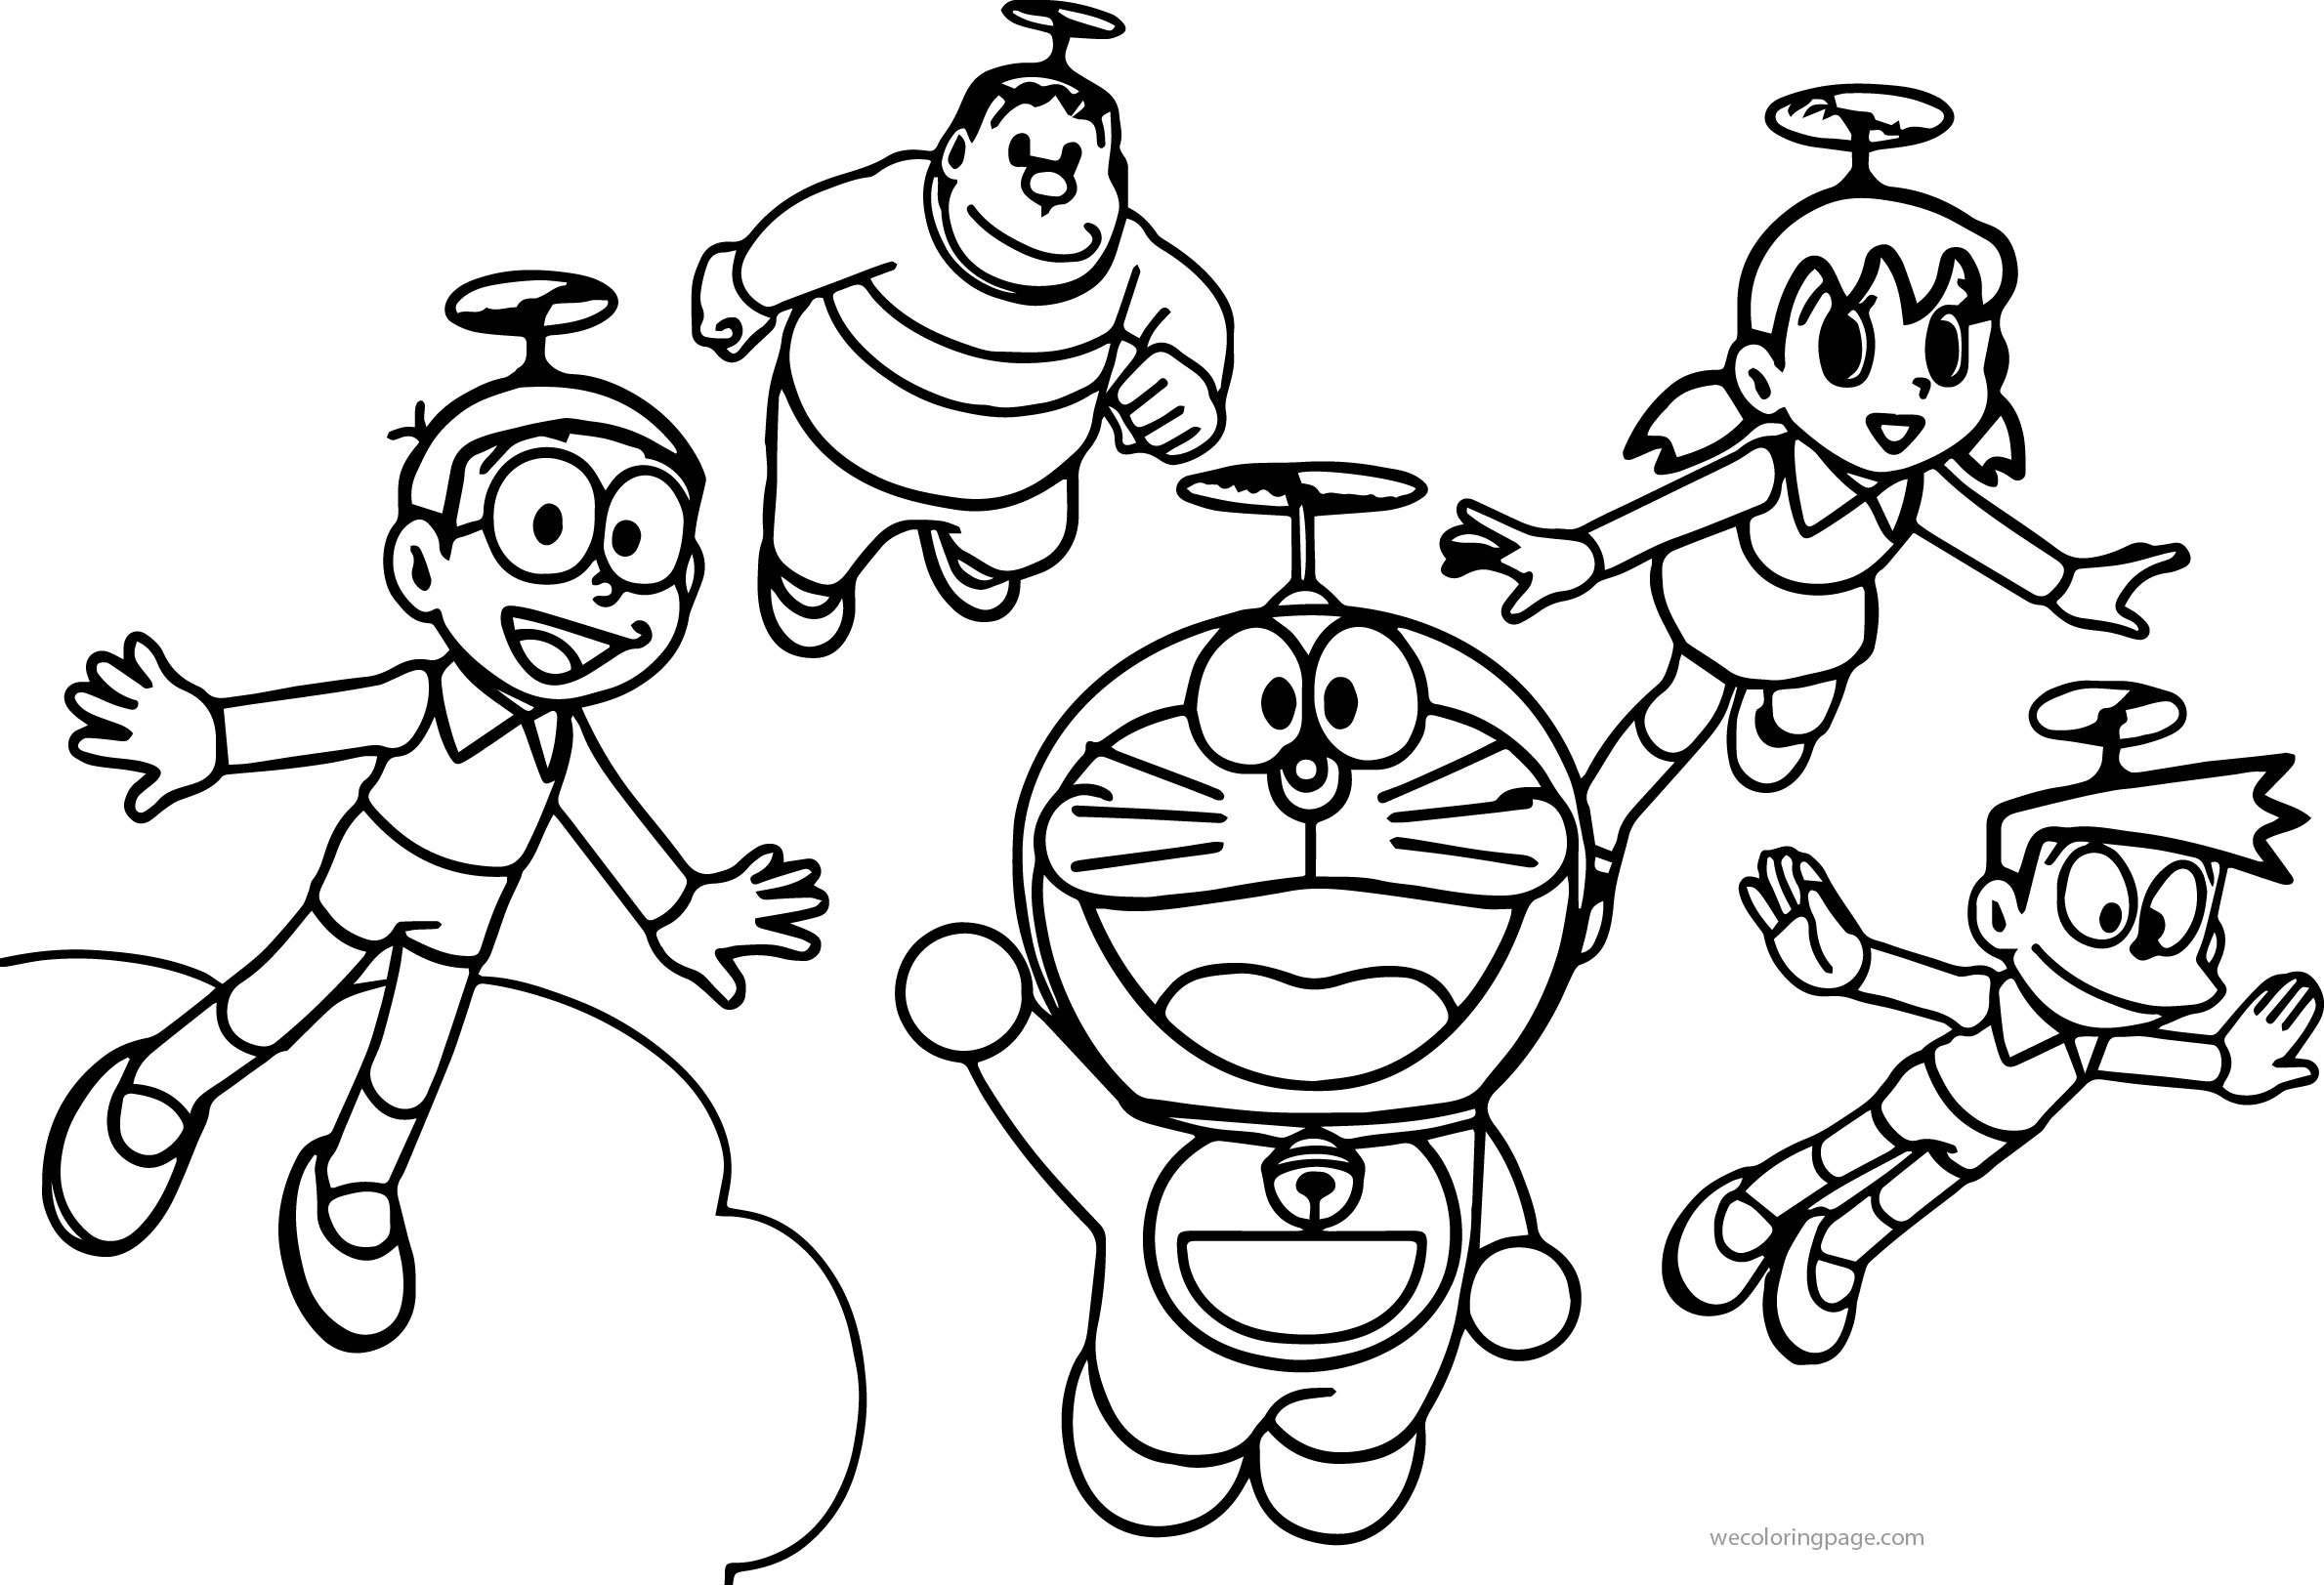 Do Choi Cho Be Hitomi Vn Doraemon Coloring Page